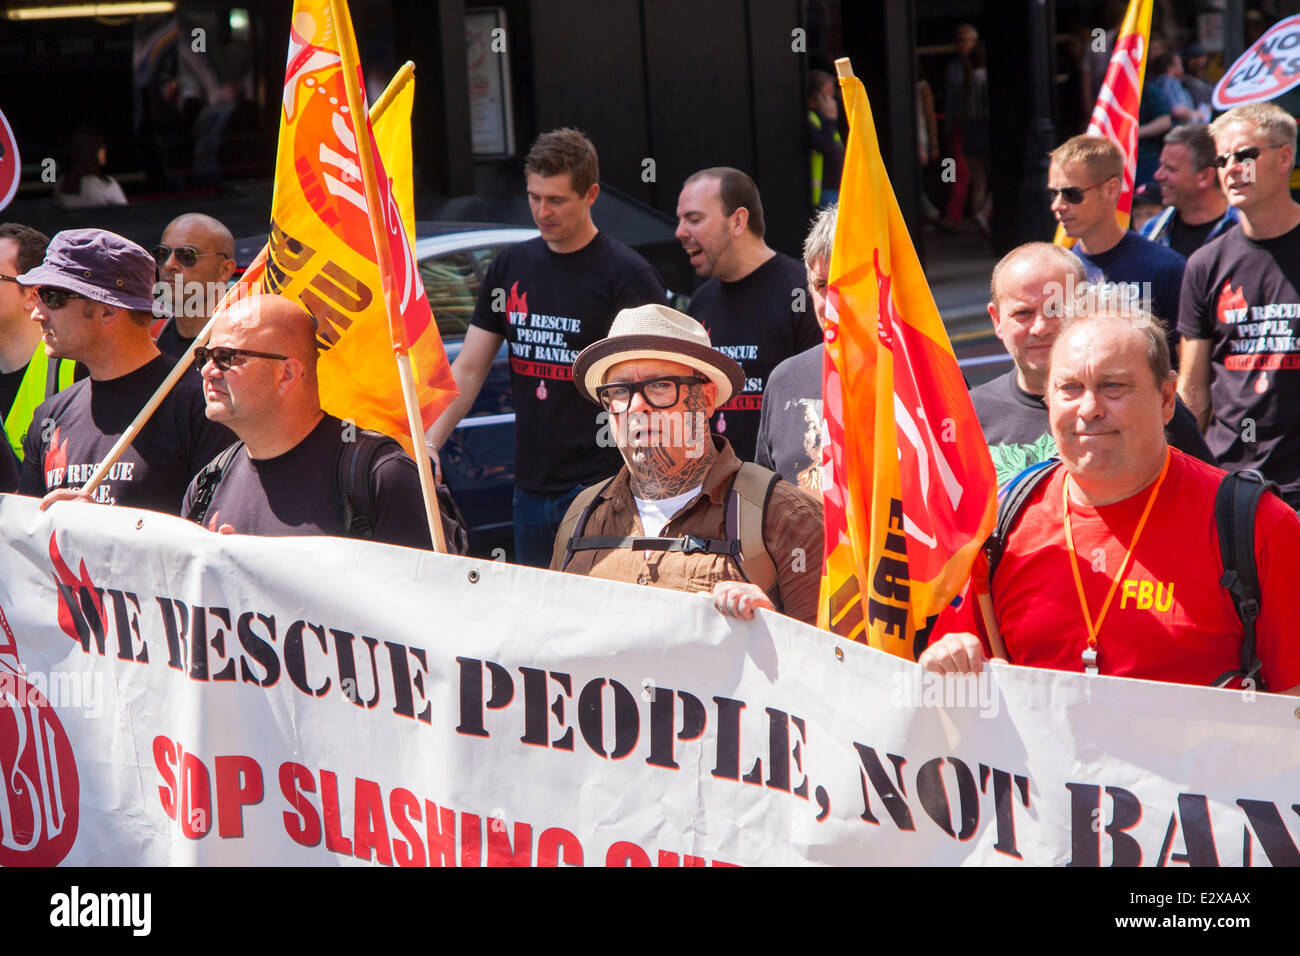 London, June 21st 2014. Members of the Fire Brigades Union participate in the march against austerity. Credit:  - Stock Image